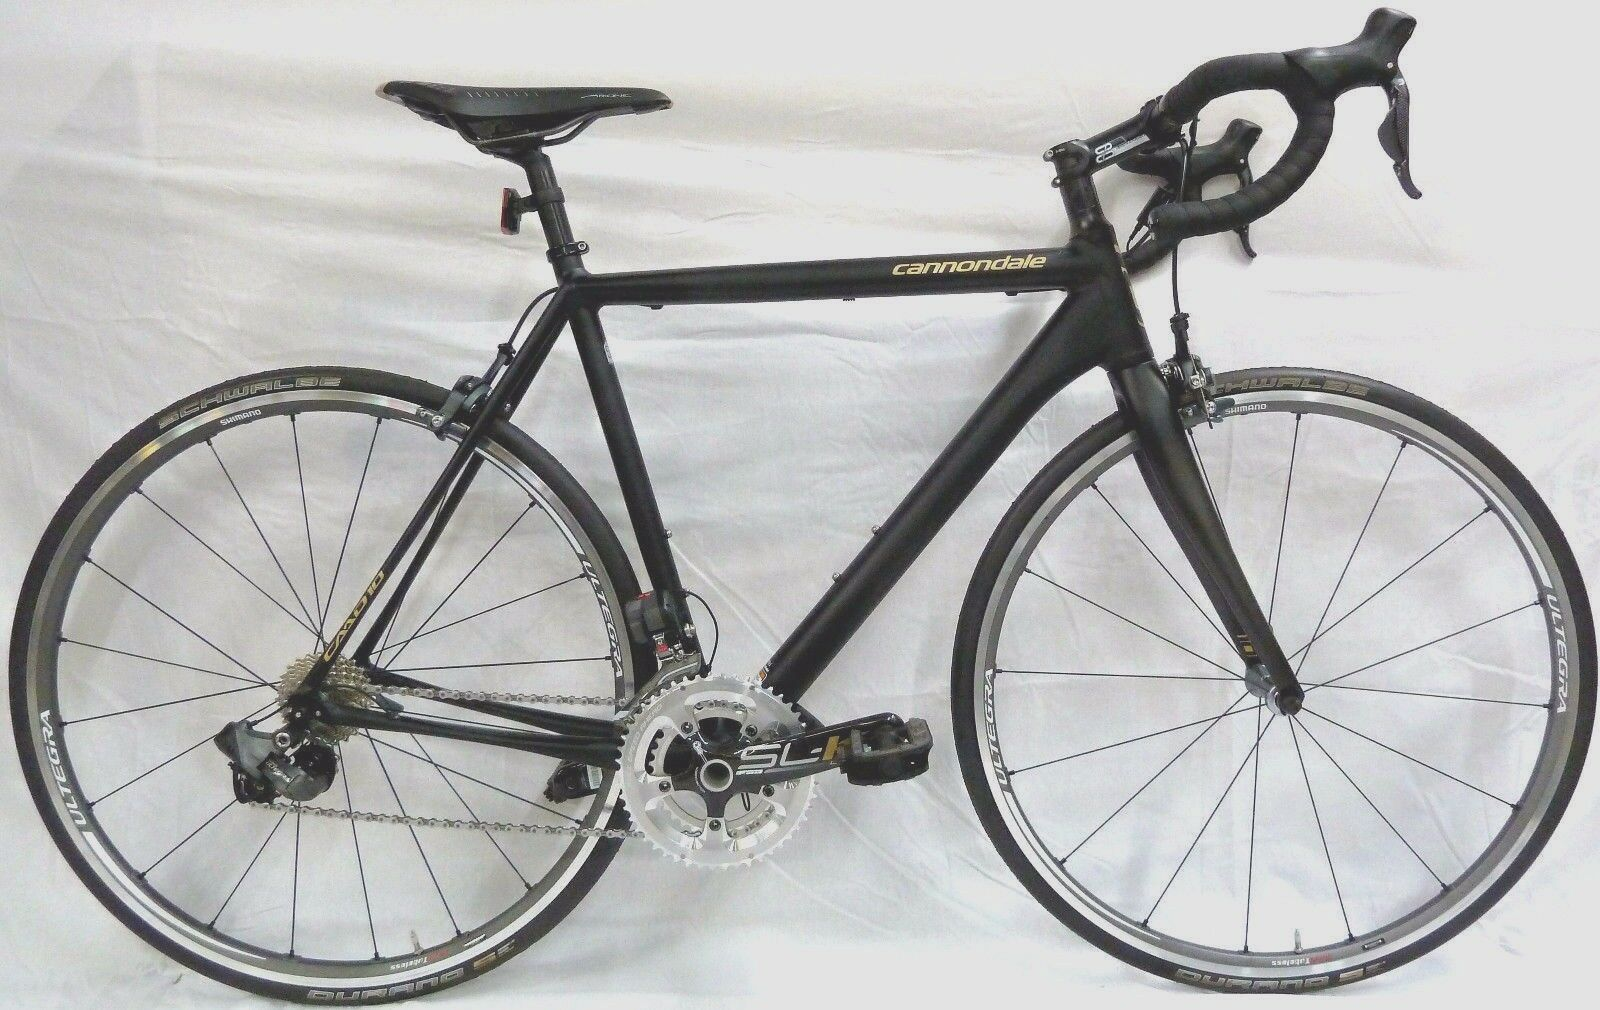 Find Cannondale Road Bikes for sale